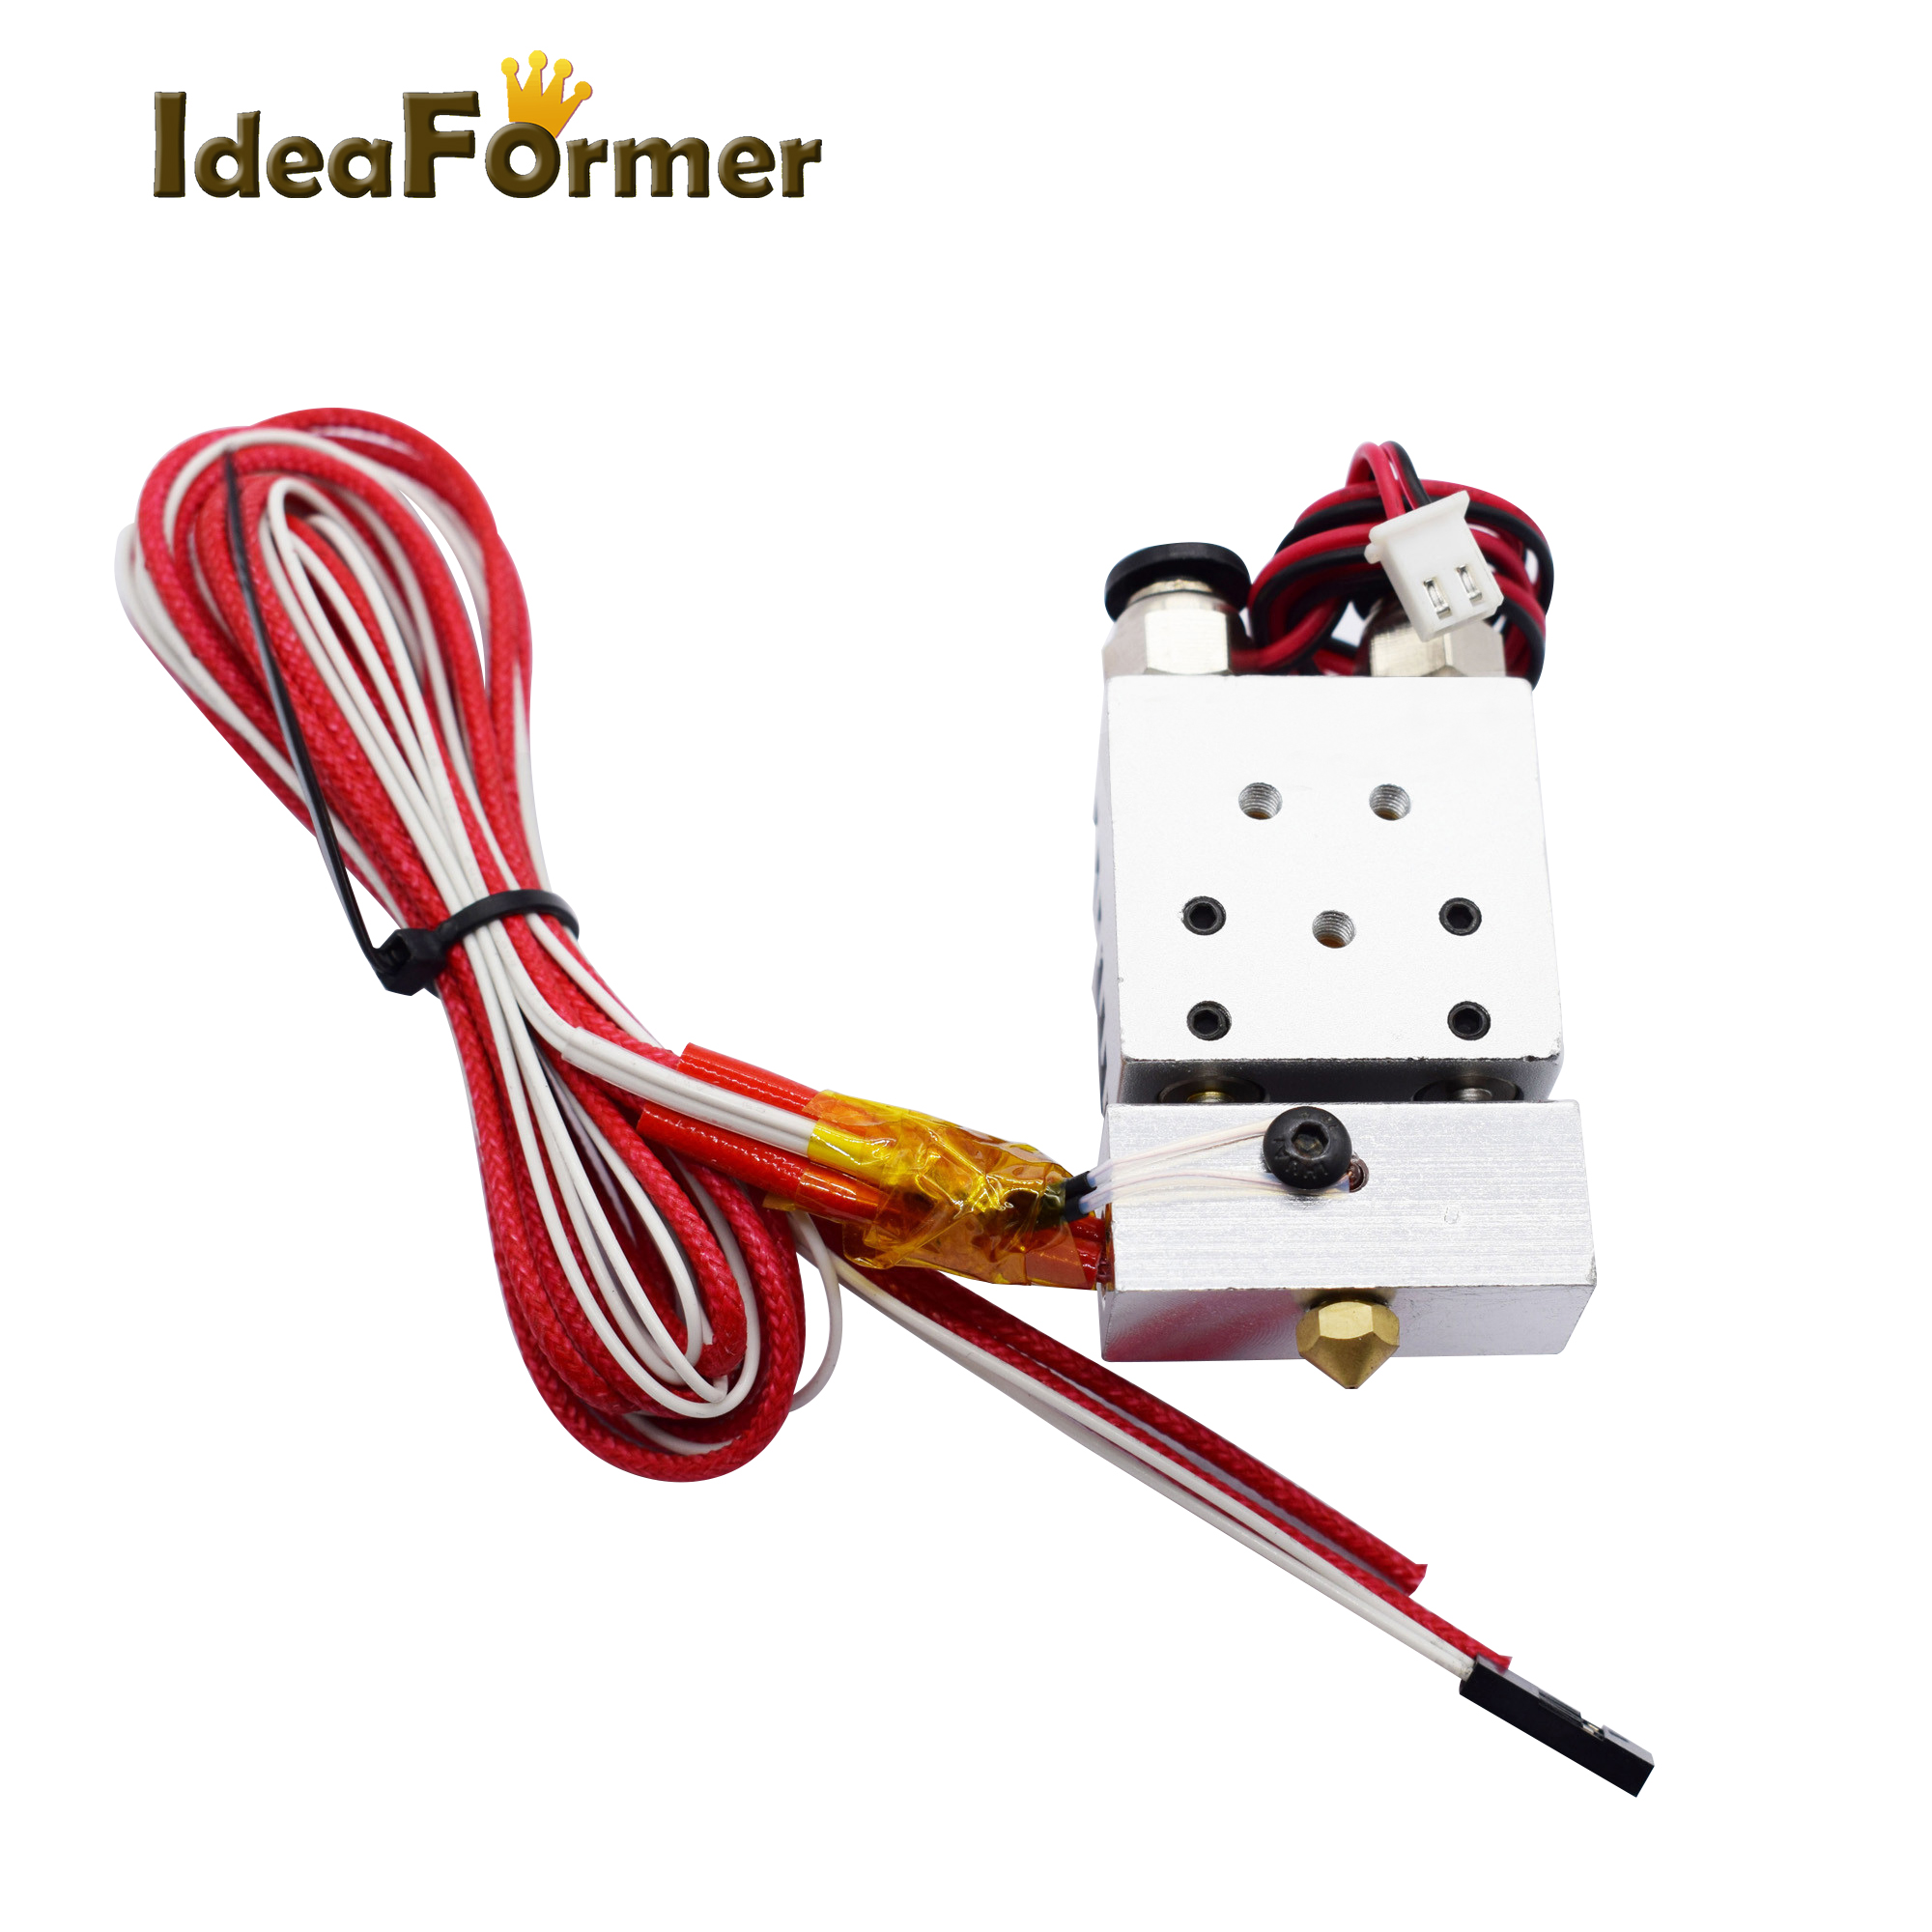 2 In 1 Out Bowden Double color Extruder Cyclops 12V/24V Bore 0.4mm 1.75mm filament with Cooling fan full kit 3D Printer parts